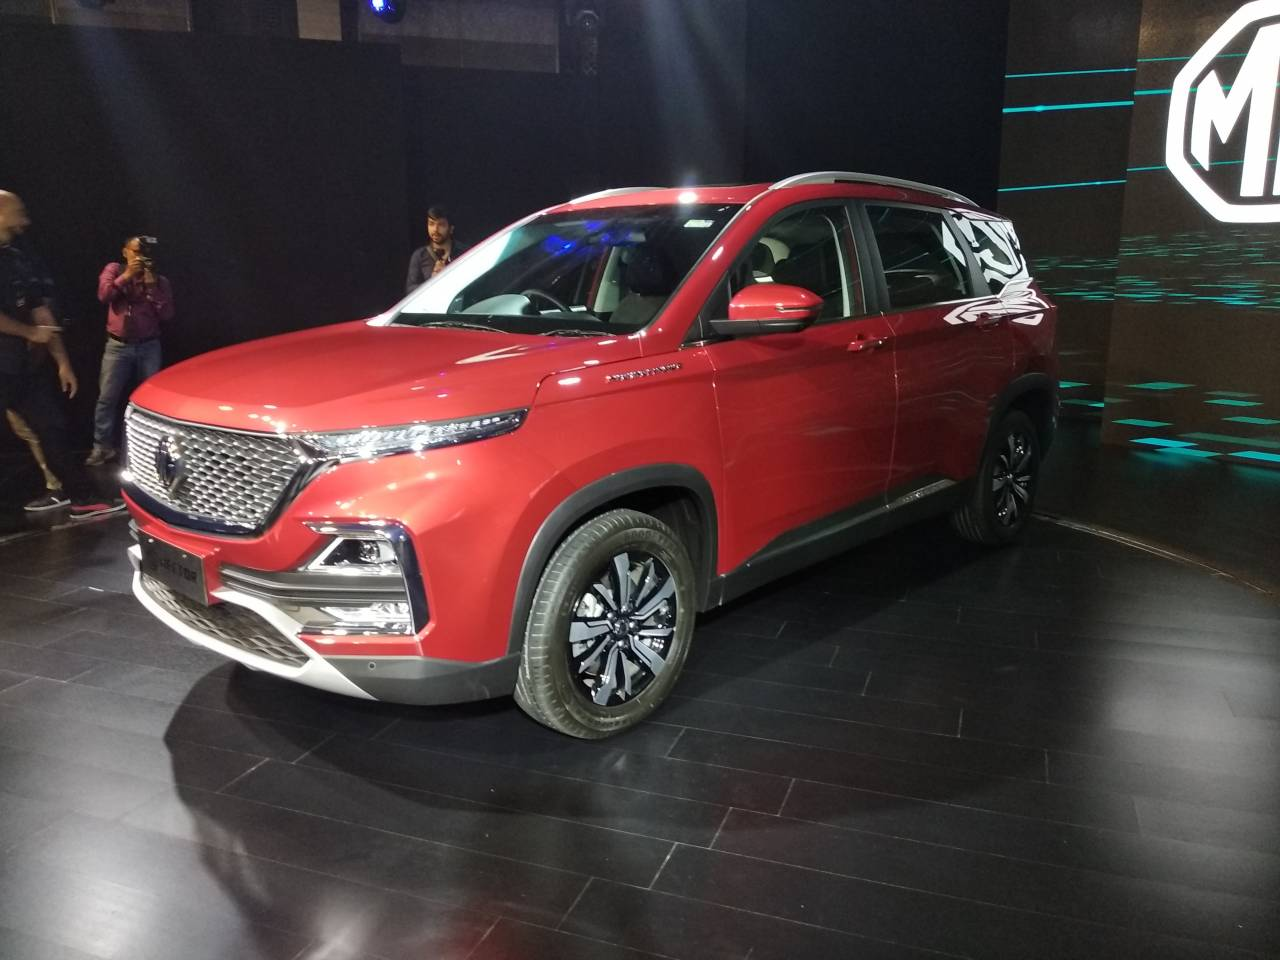 The diesel unit is bought from Fiat Chrysler Automobiles India. The same engine, 2 litre, 170hp, is seen on the Jeep Compass mated to a six speed manual transmission. Mileage is expected to be 17-18 kmpl. Pic courtesy: Moneycontrol